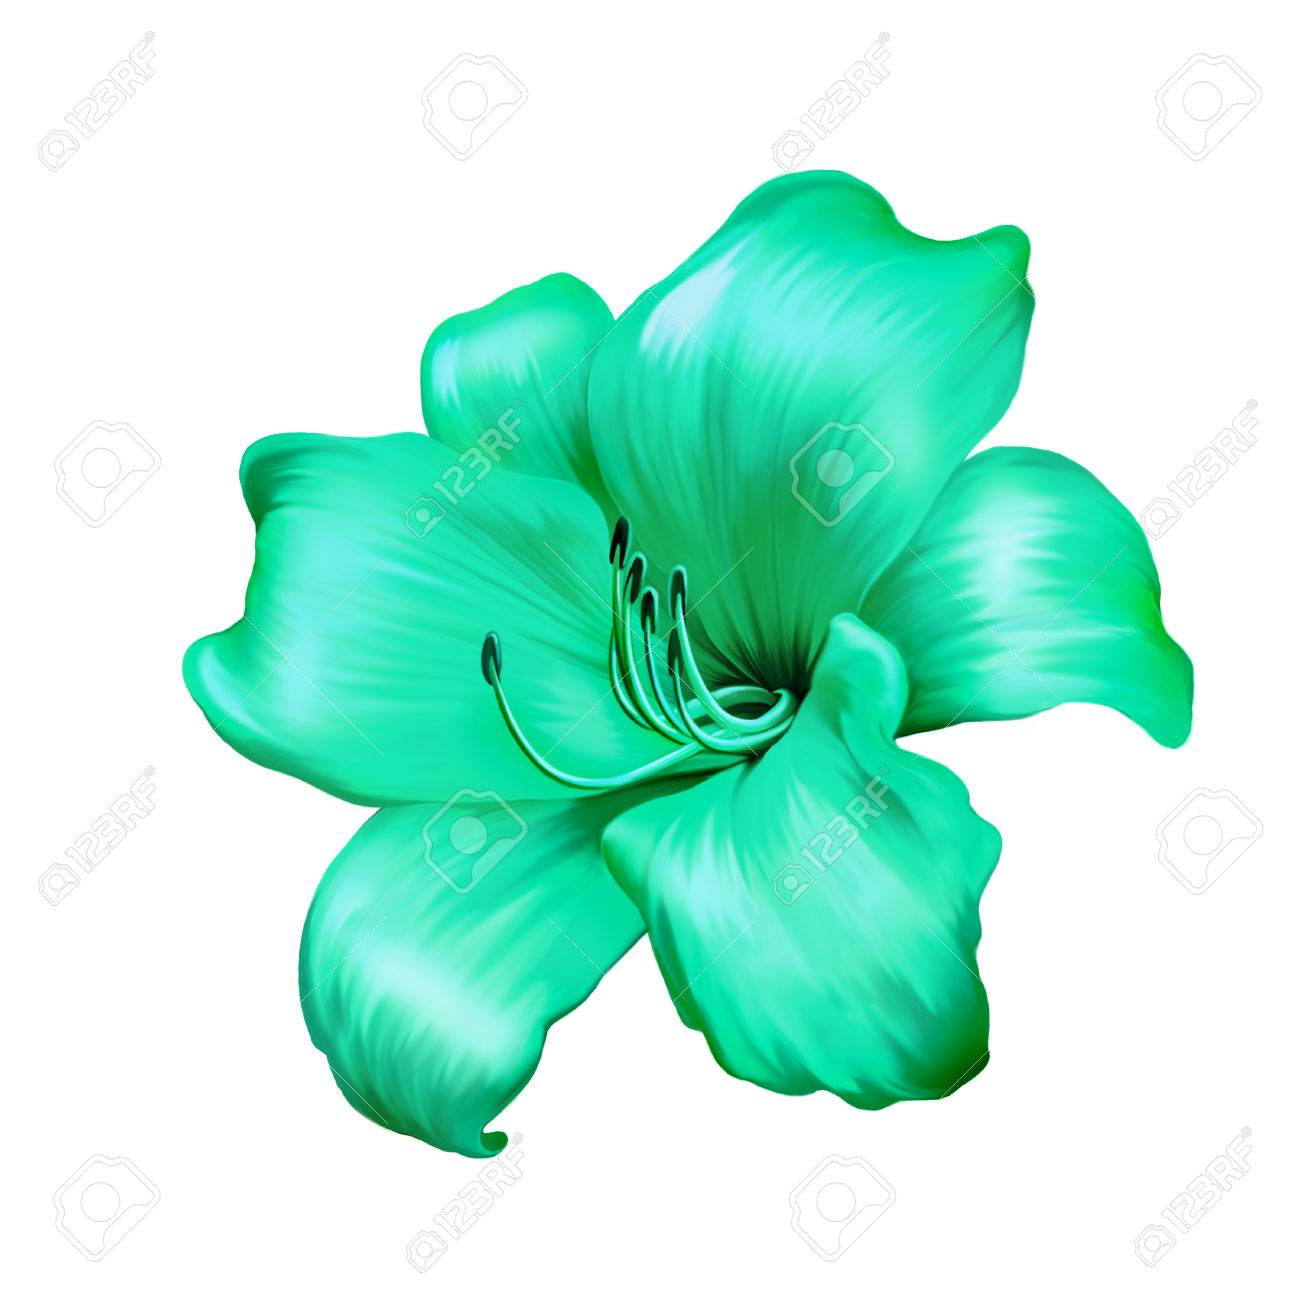 Blue lily flower images illustration of green blue lily flower isolated on white background stock illustration izmirmasajfo Gallery